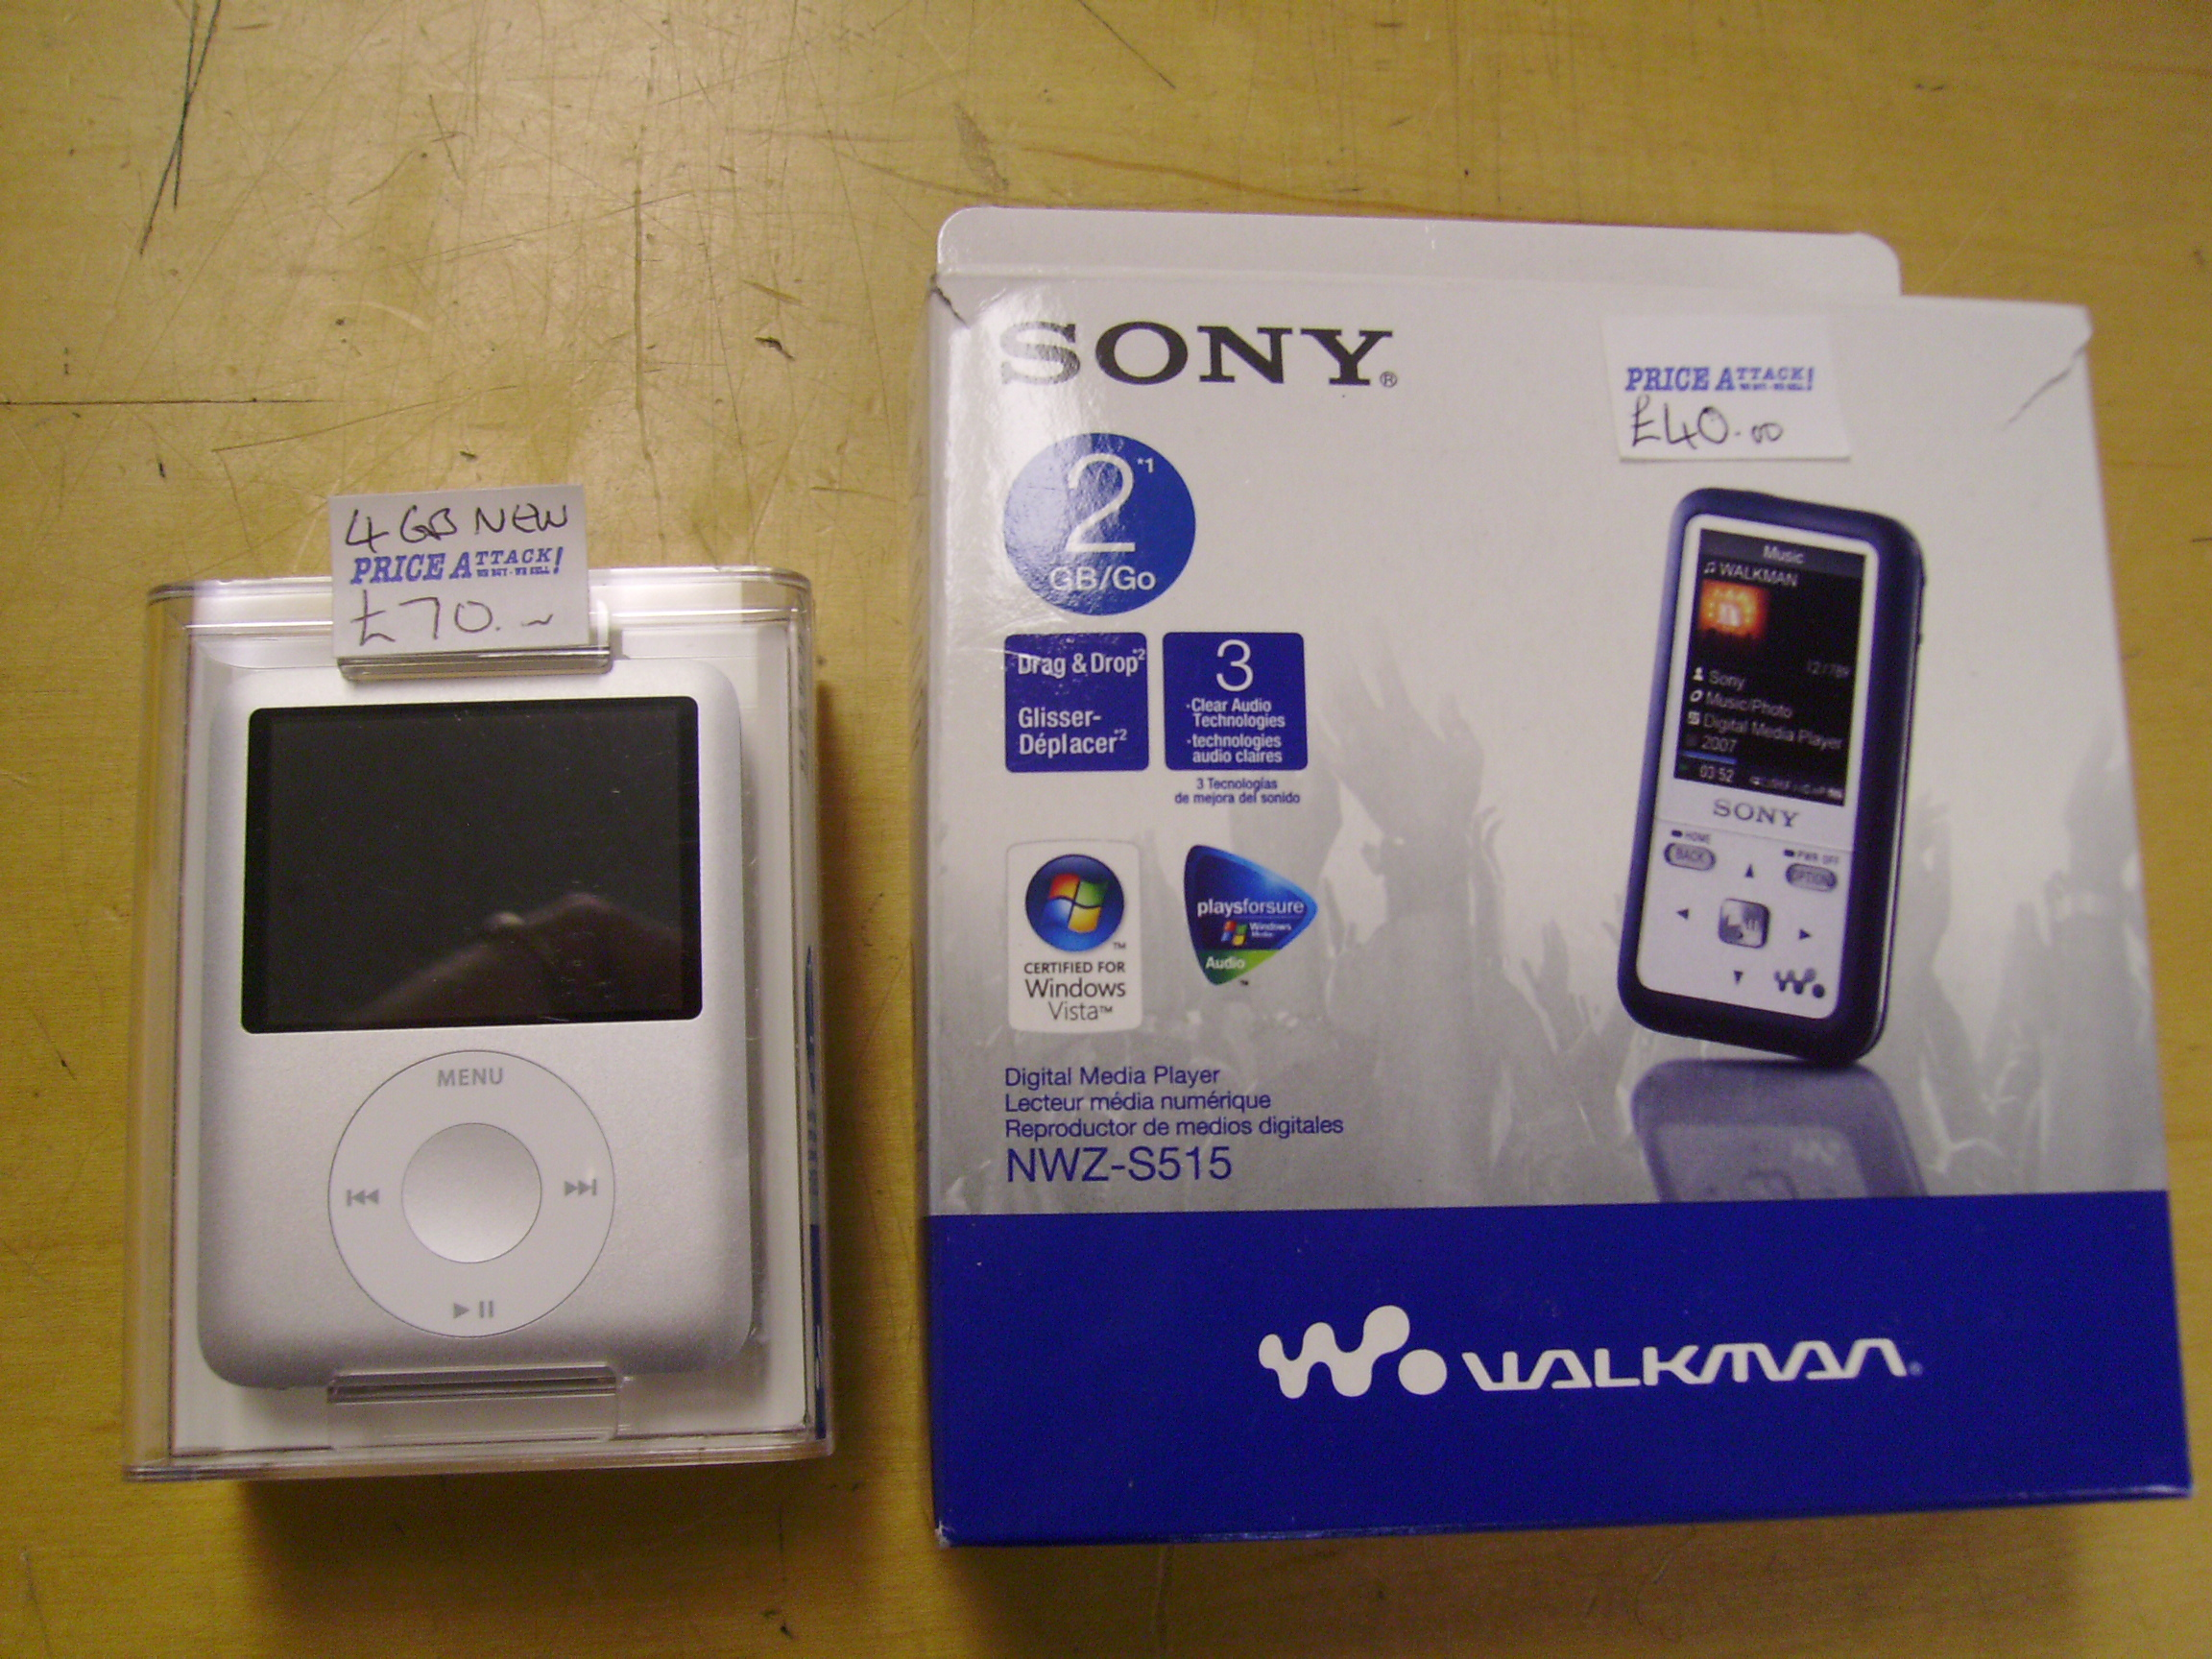 MP3 / MP4 players & IPODs plus docking stations and accesories